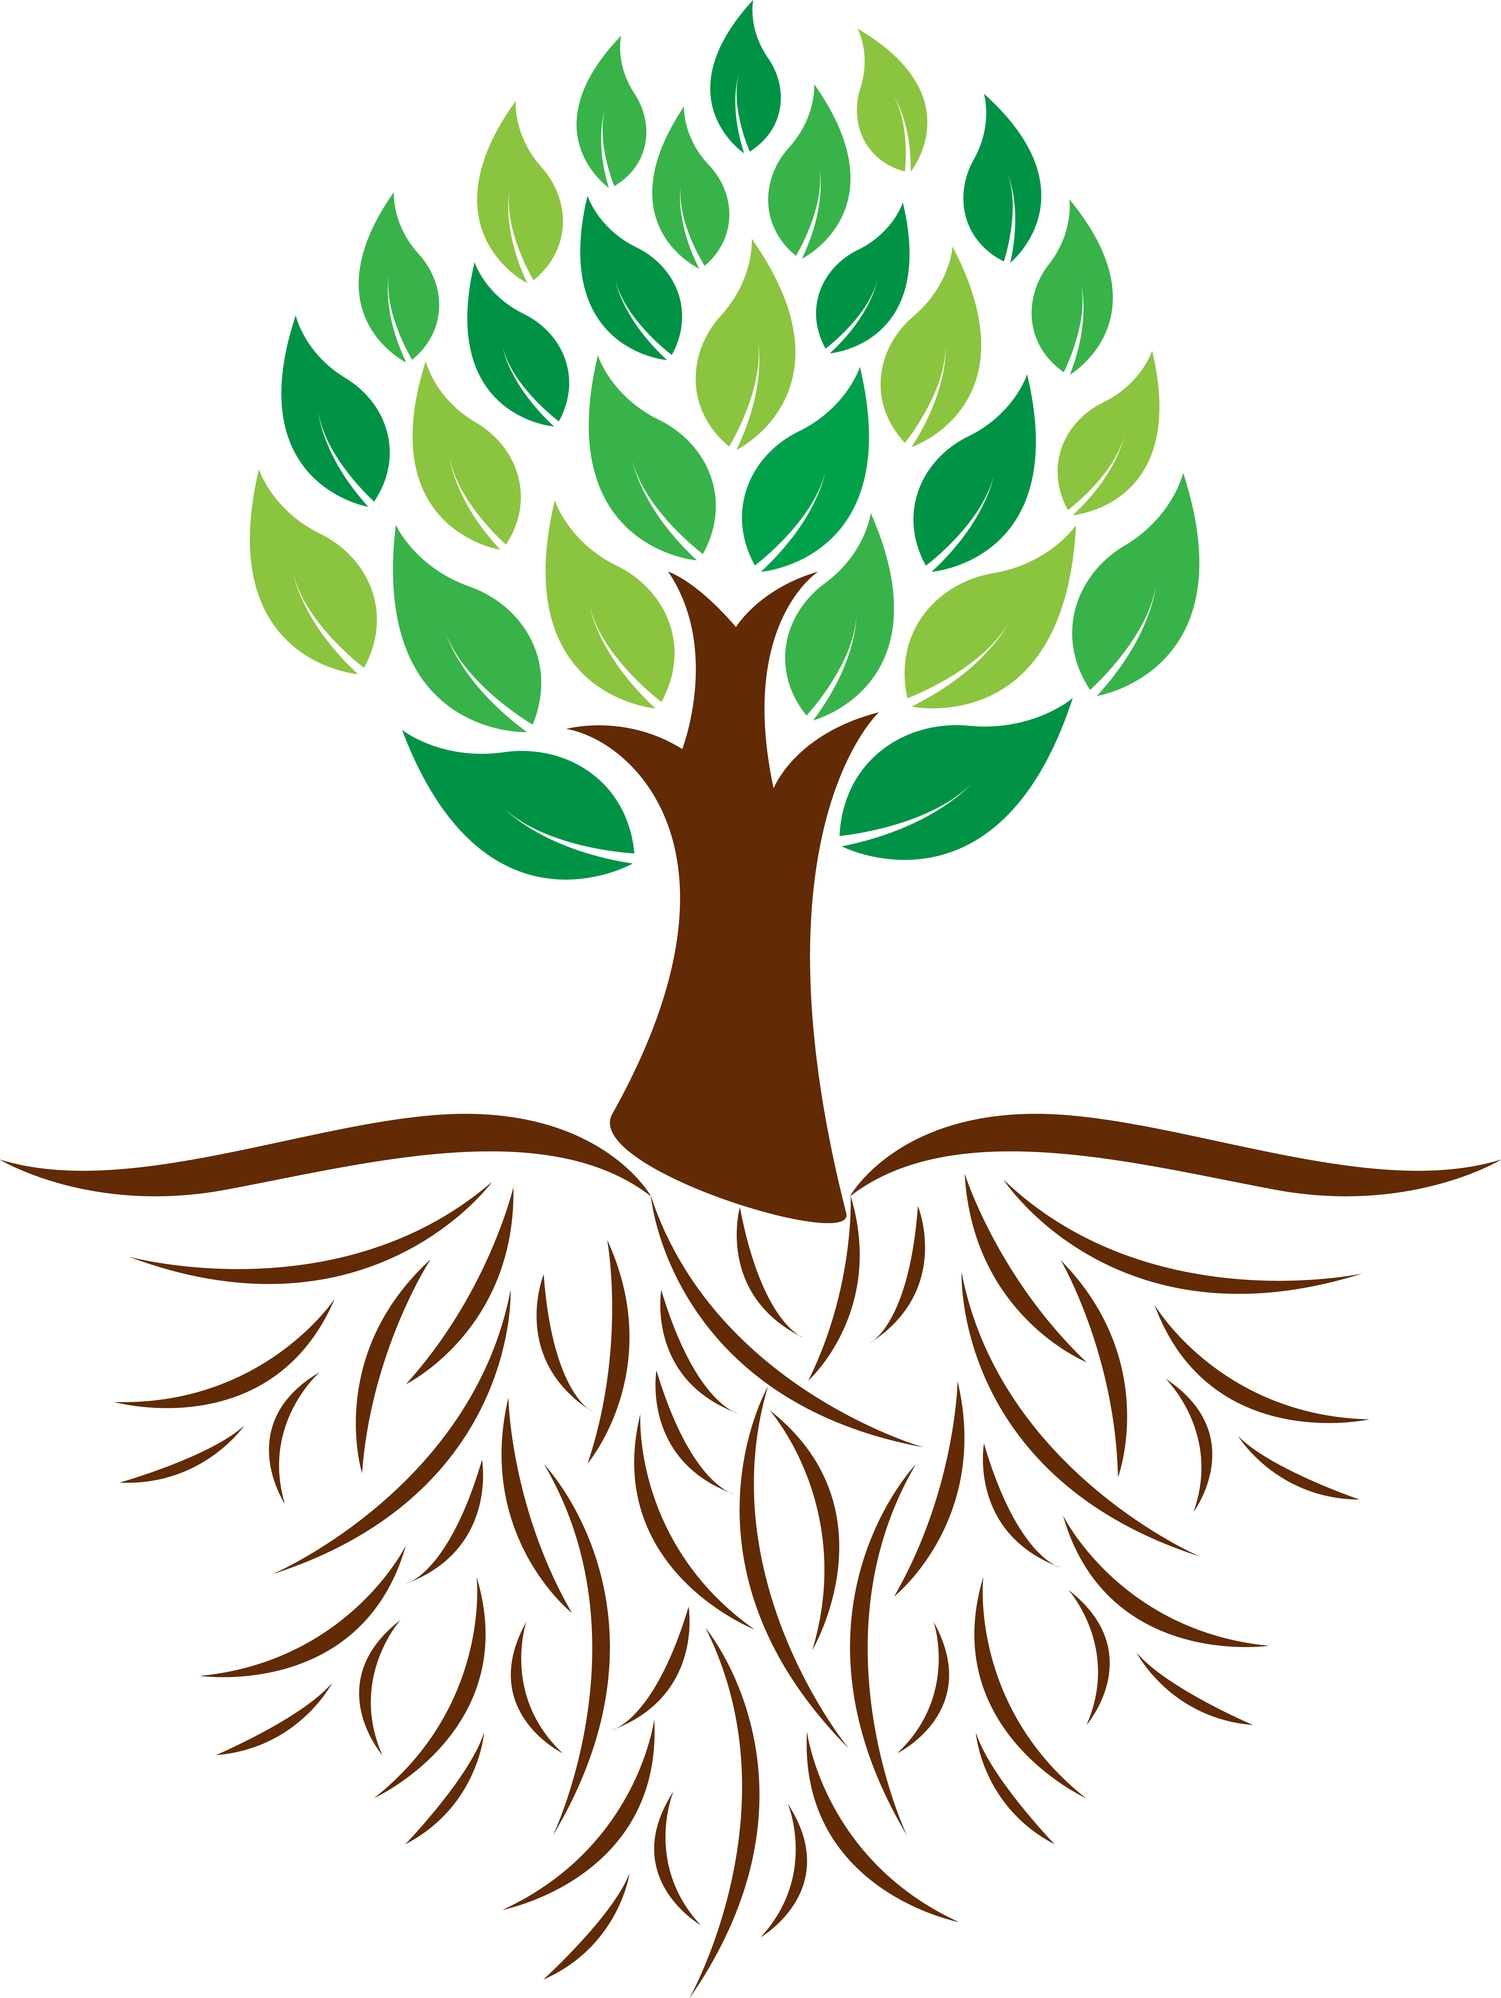 Roots clipart detailed tree. Awesome with gallery digital